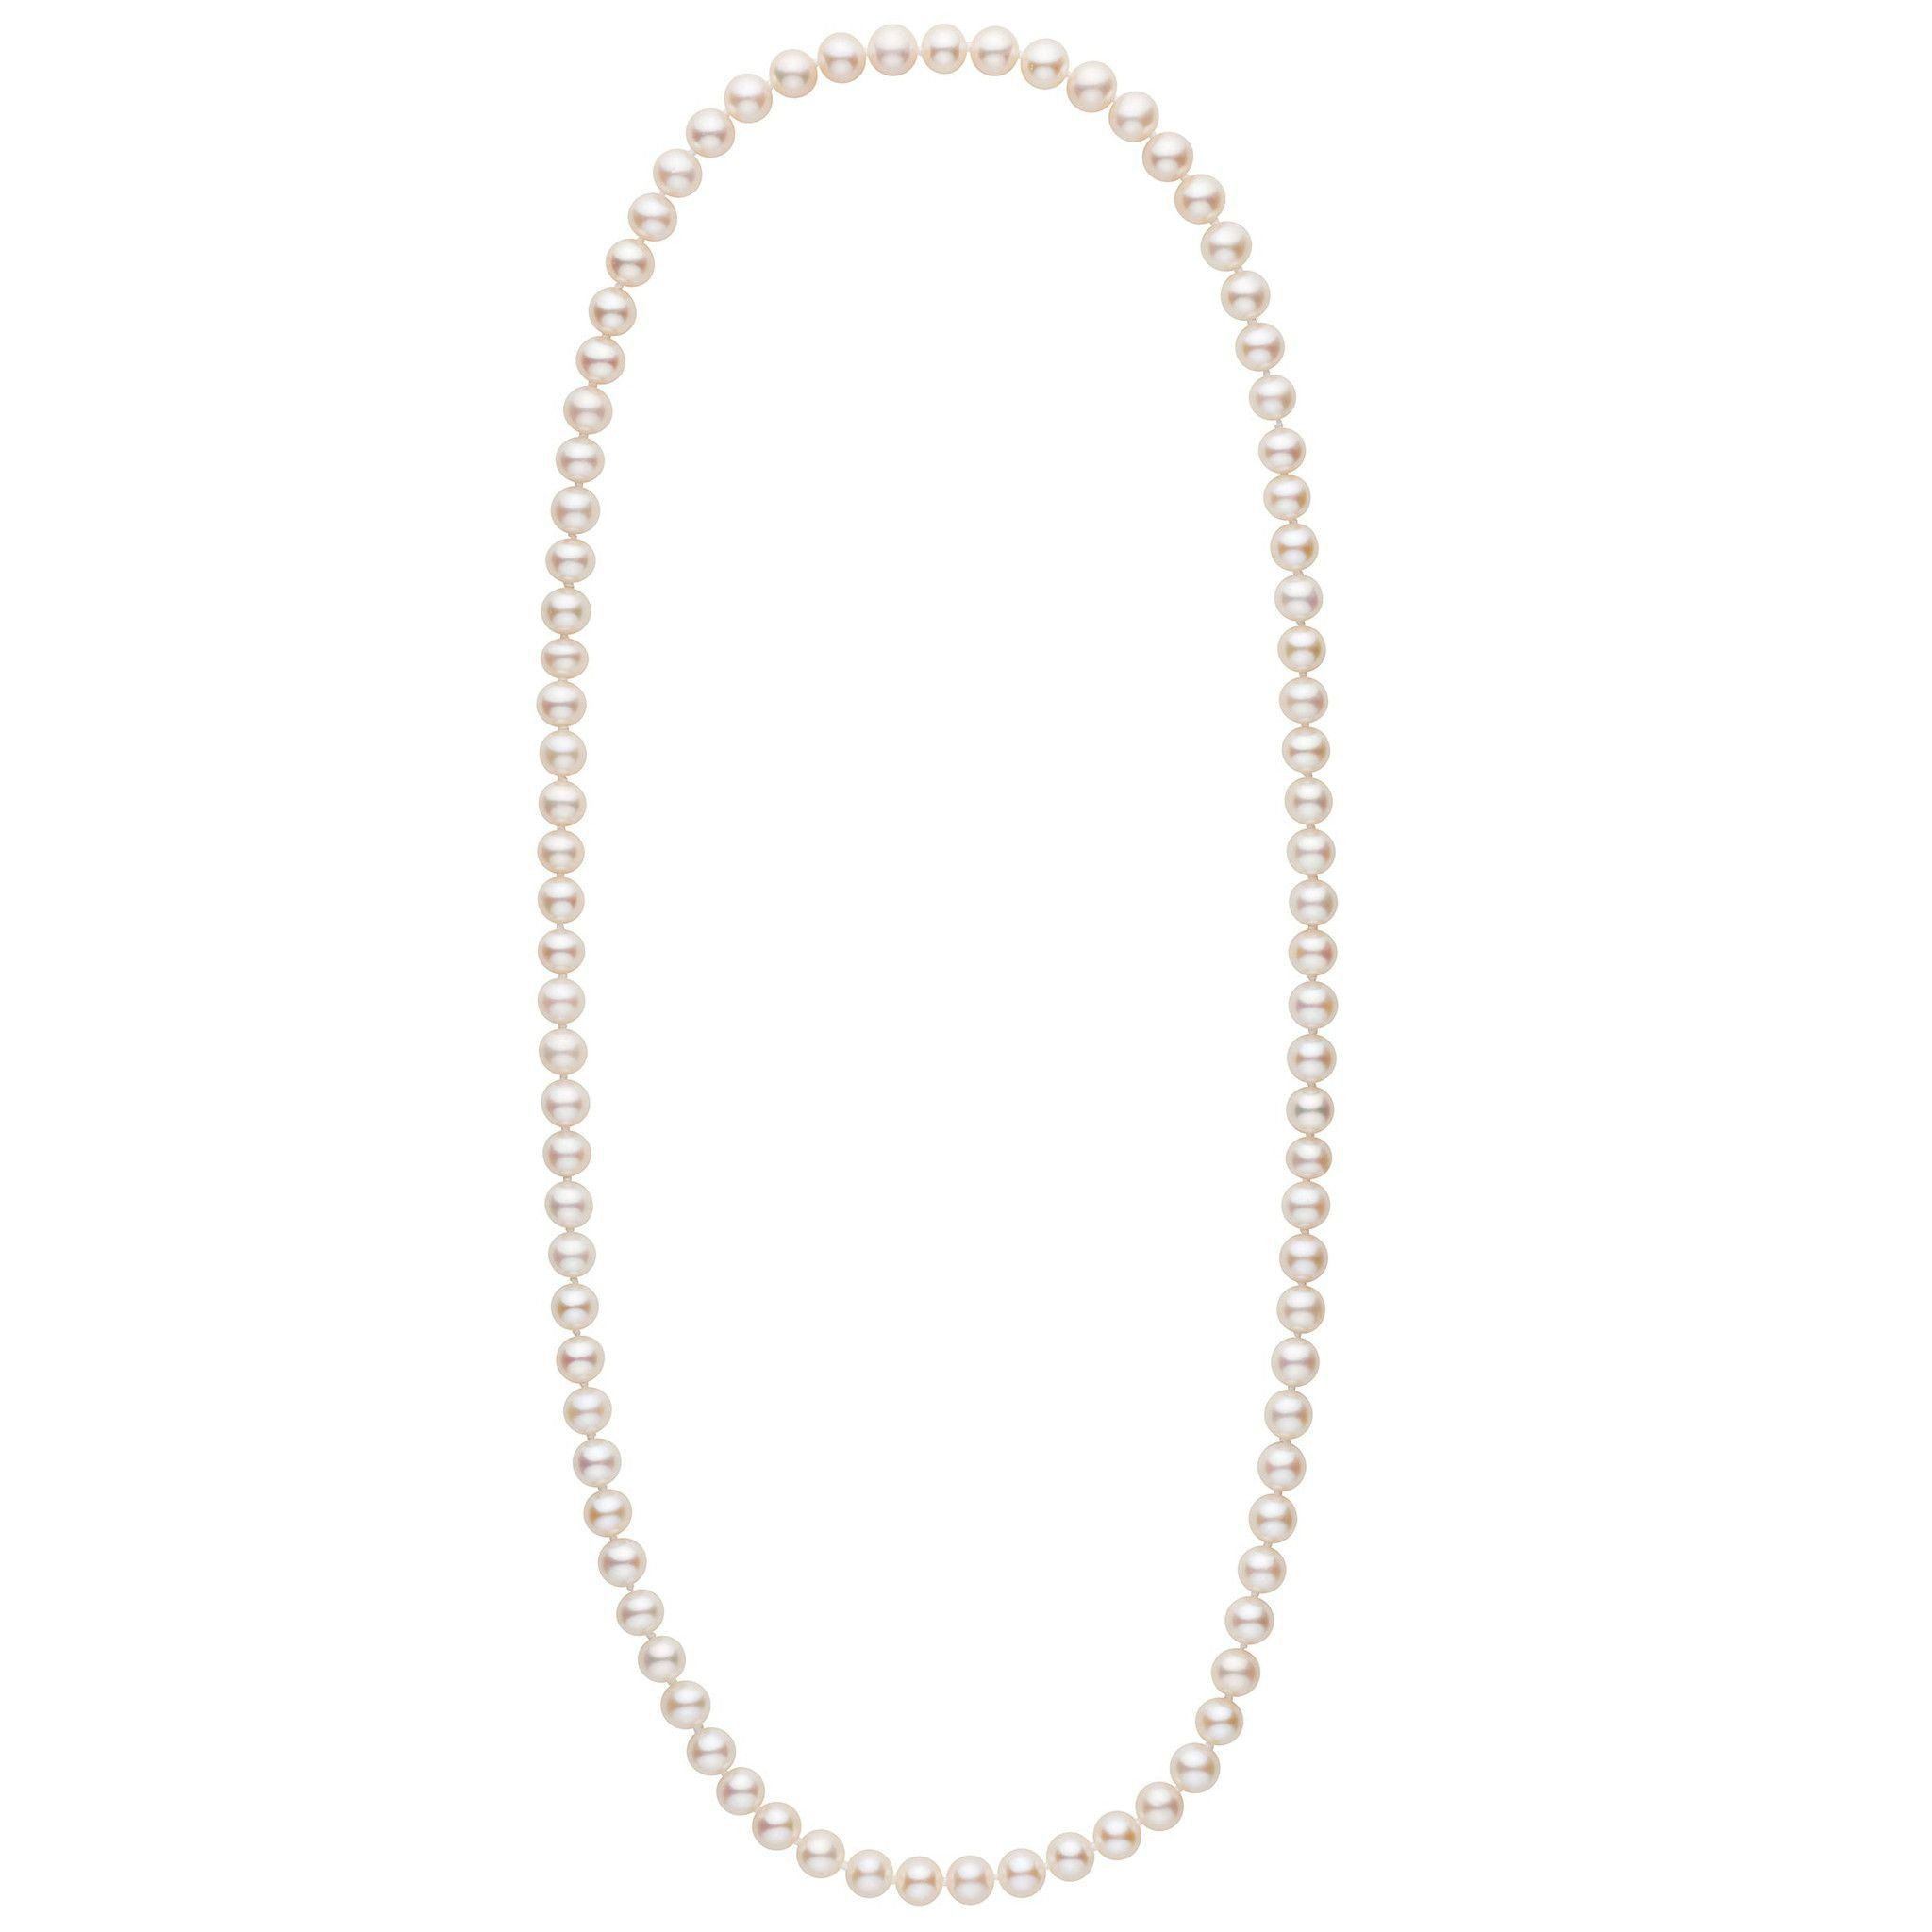 26-inch 7.5-8.0 mm AAA White Freshwater Pearl Necklace